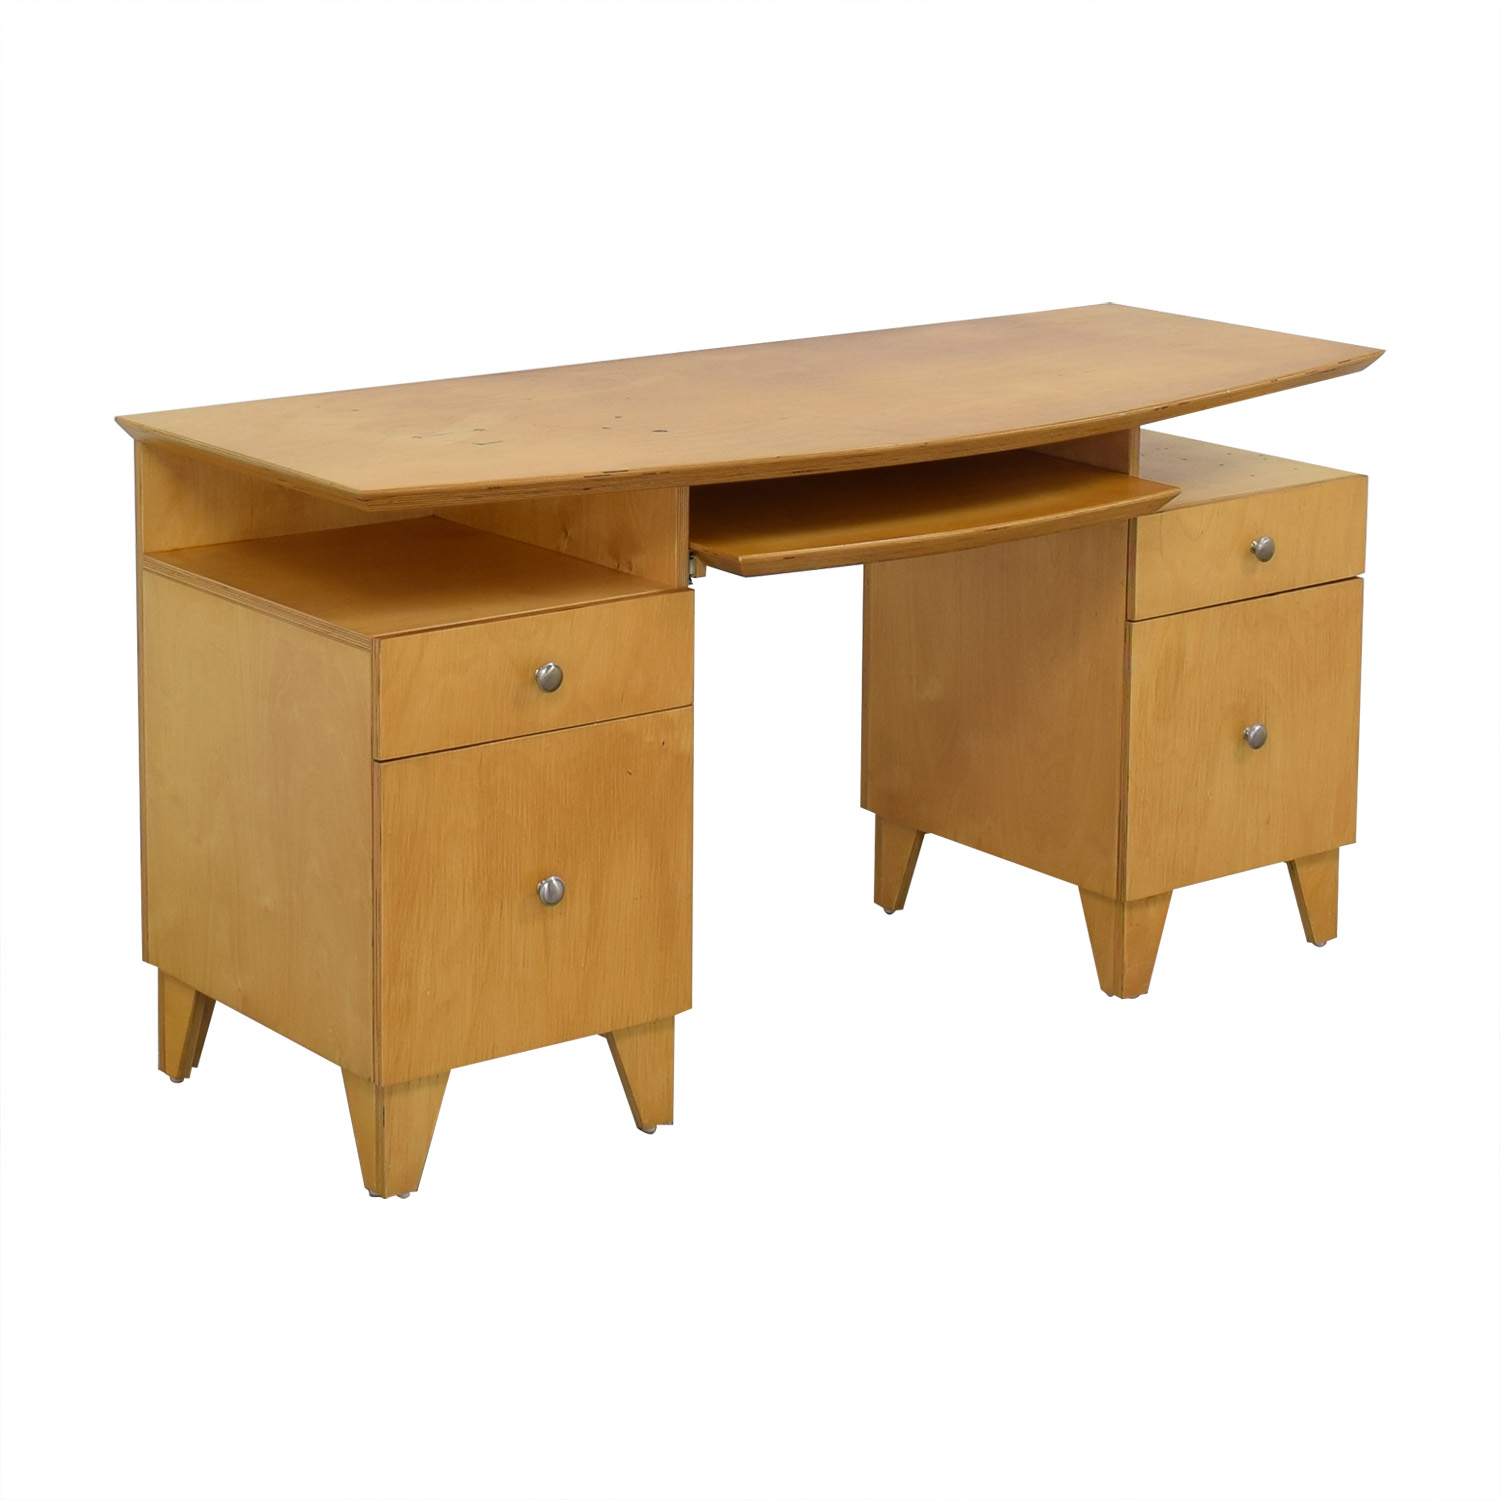 buy  Modernist Desk with Pull-Out Keyboard Tray online